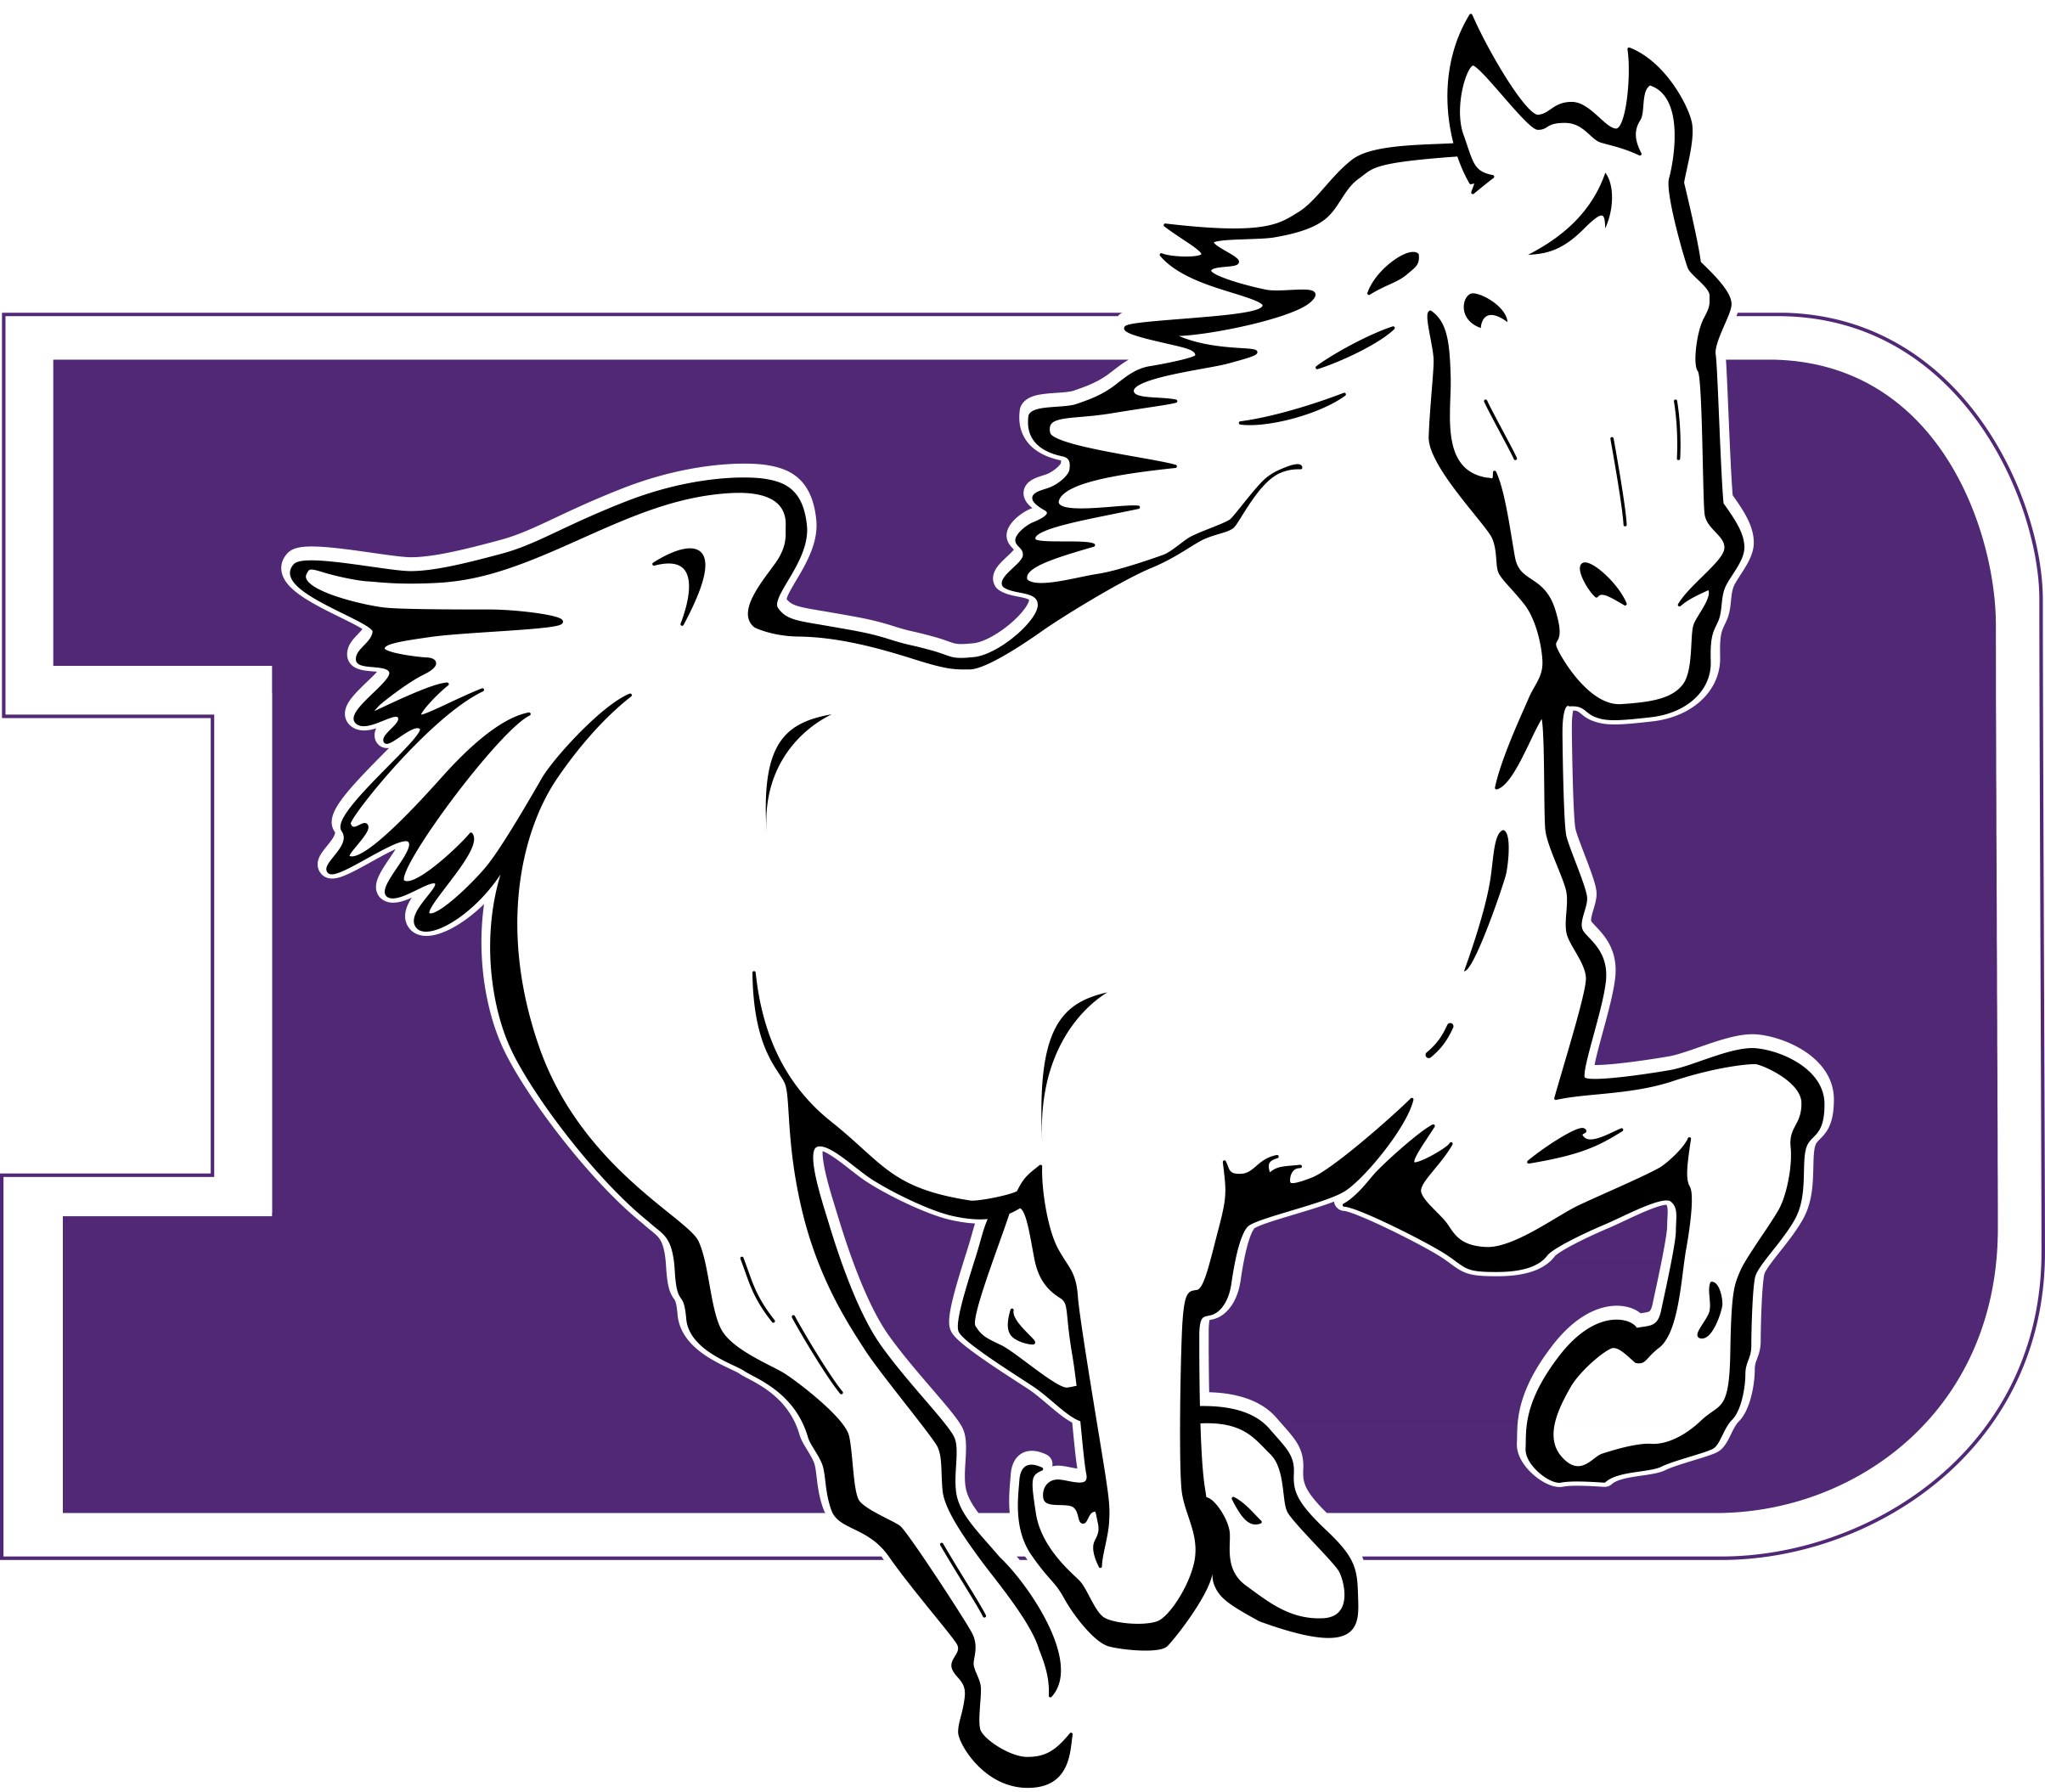 4_stallion_D_2NewColor.png